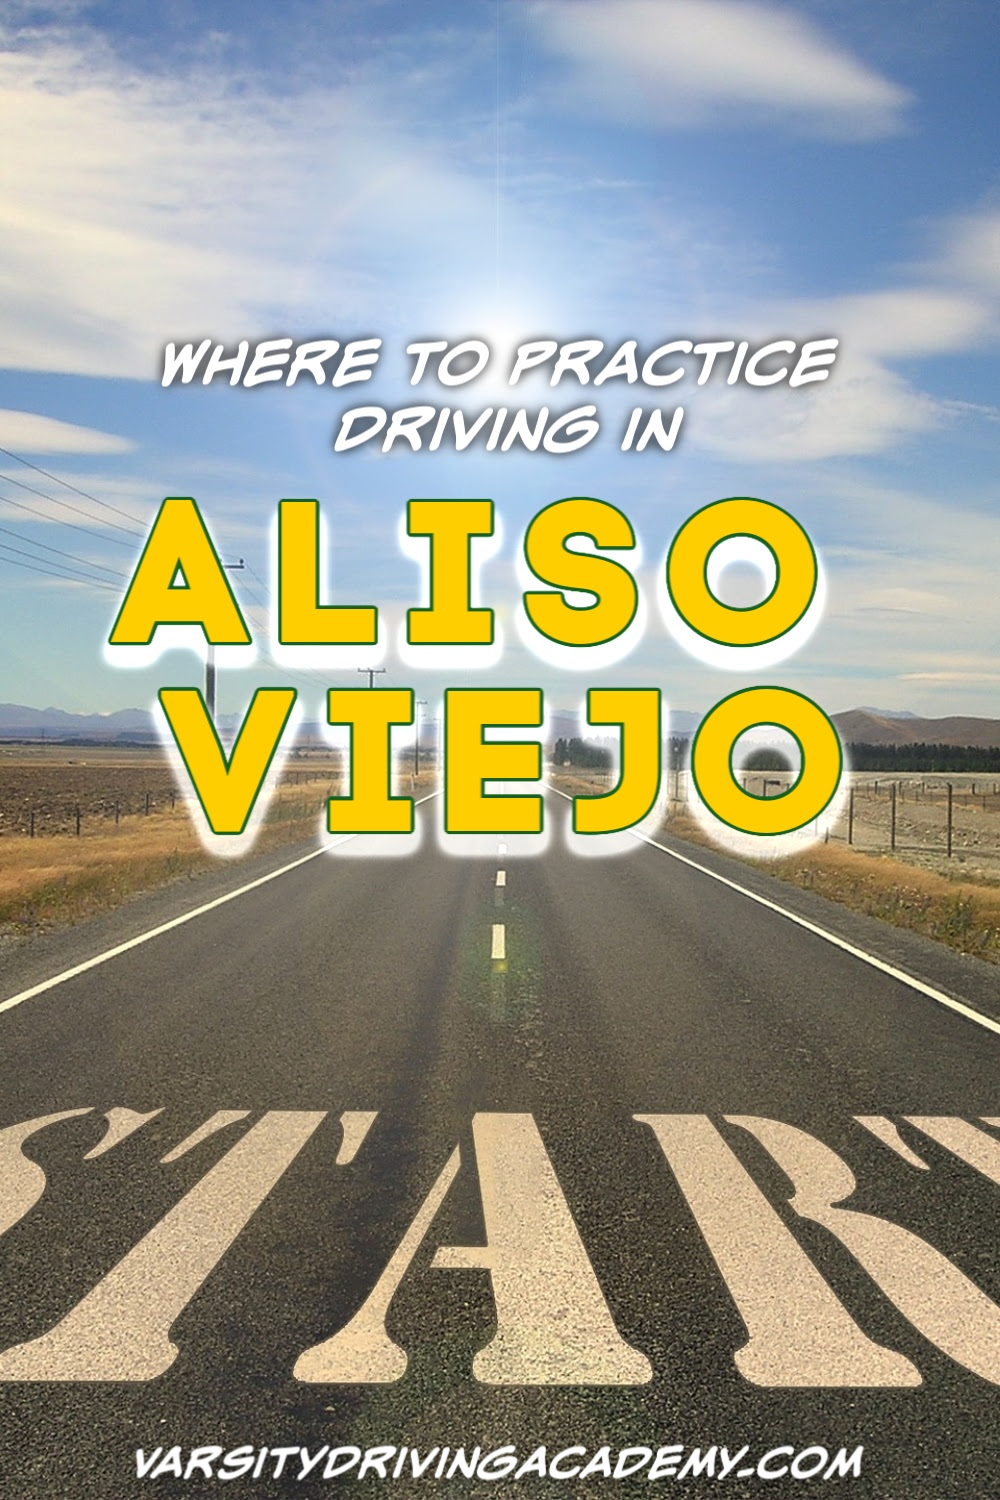 You can practice driving locally by knowing where to practice driving in Aliso Viejo and then put your skills to the test before your final test.